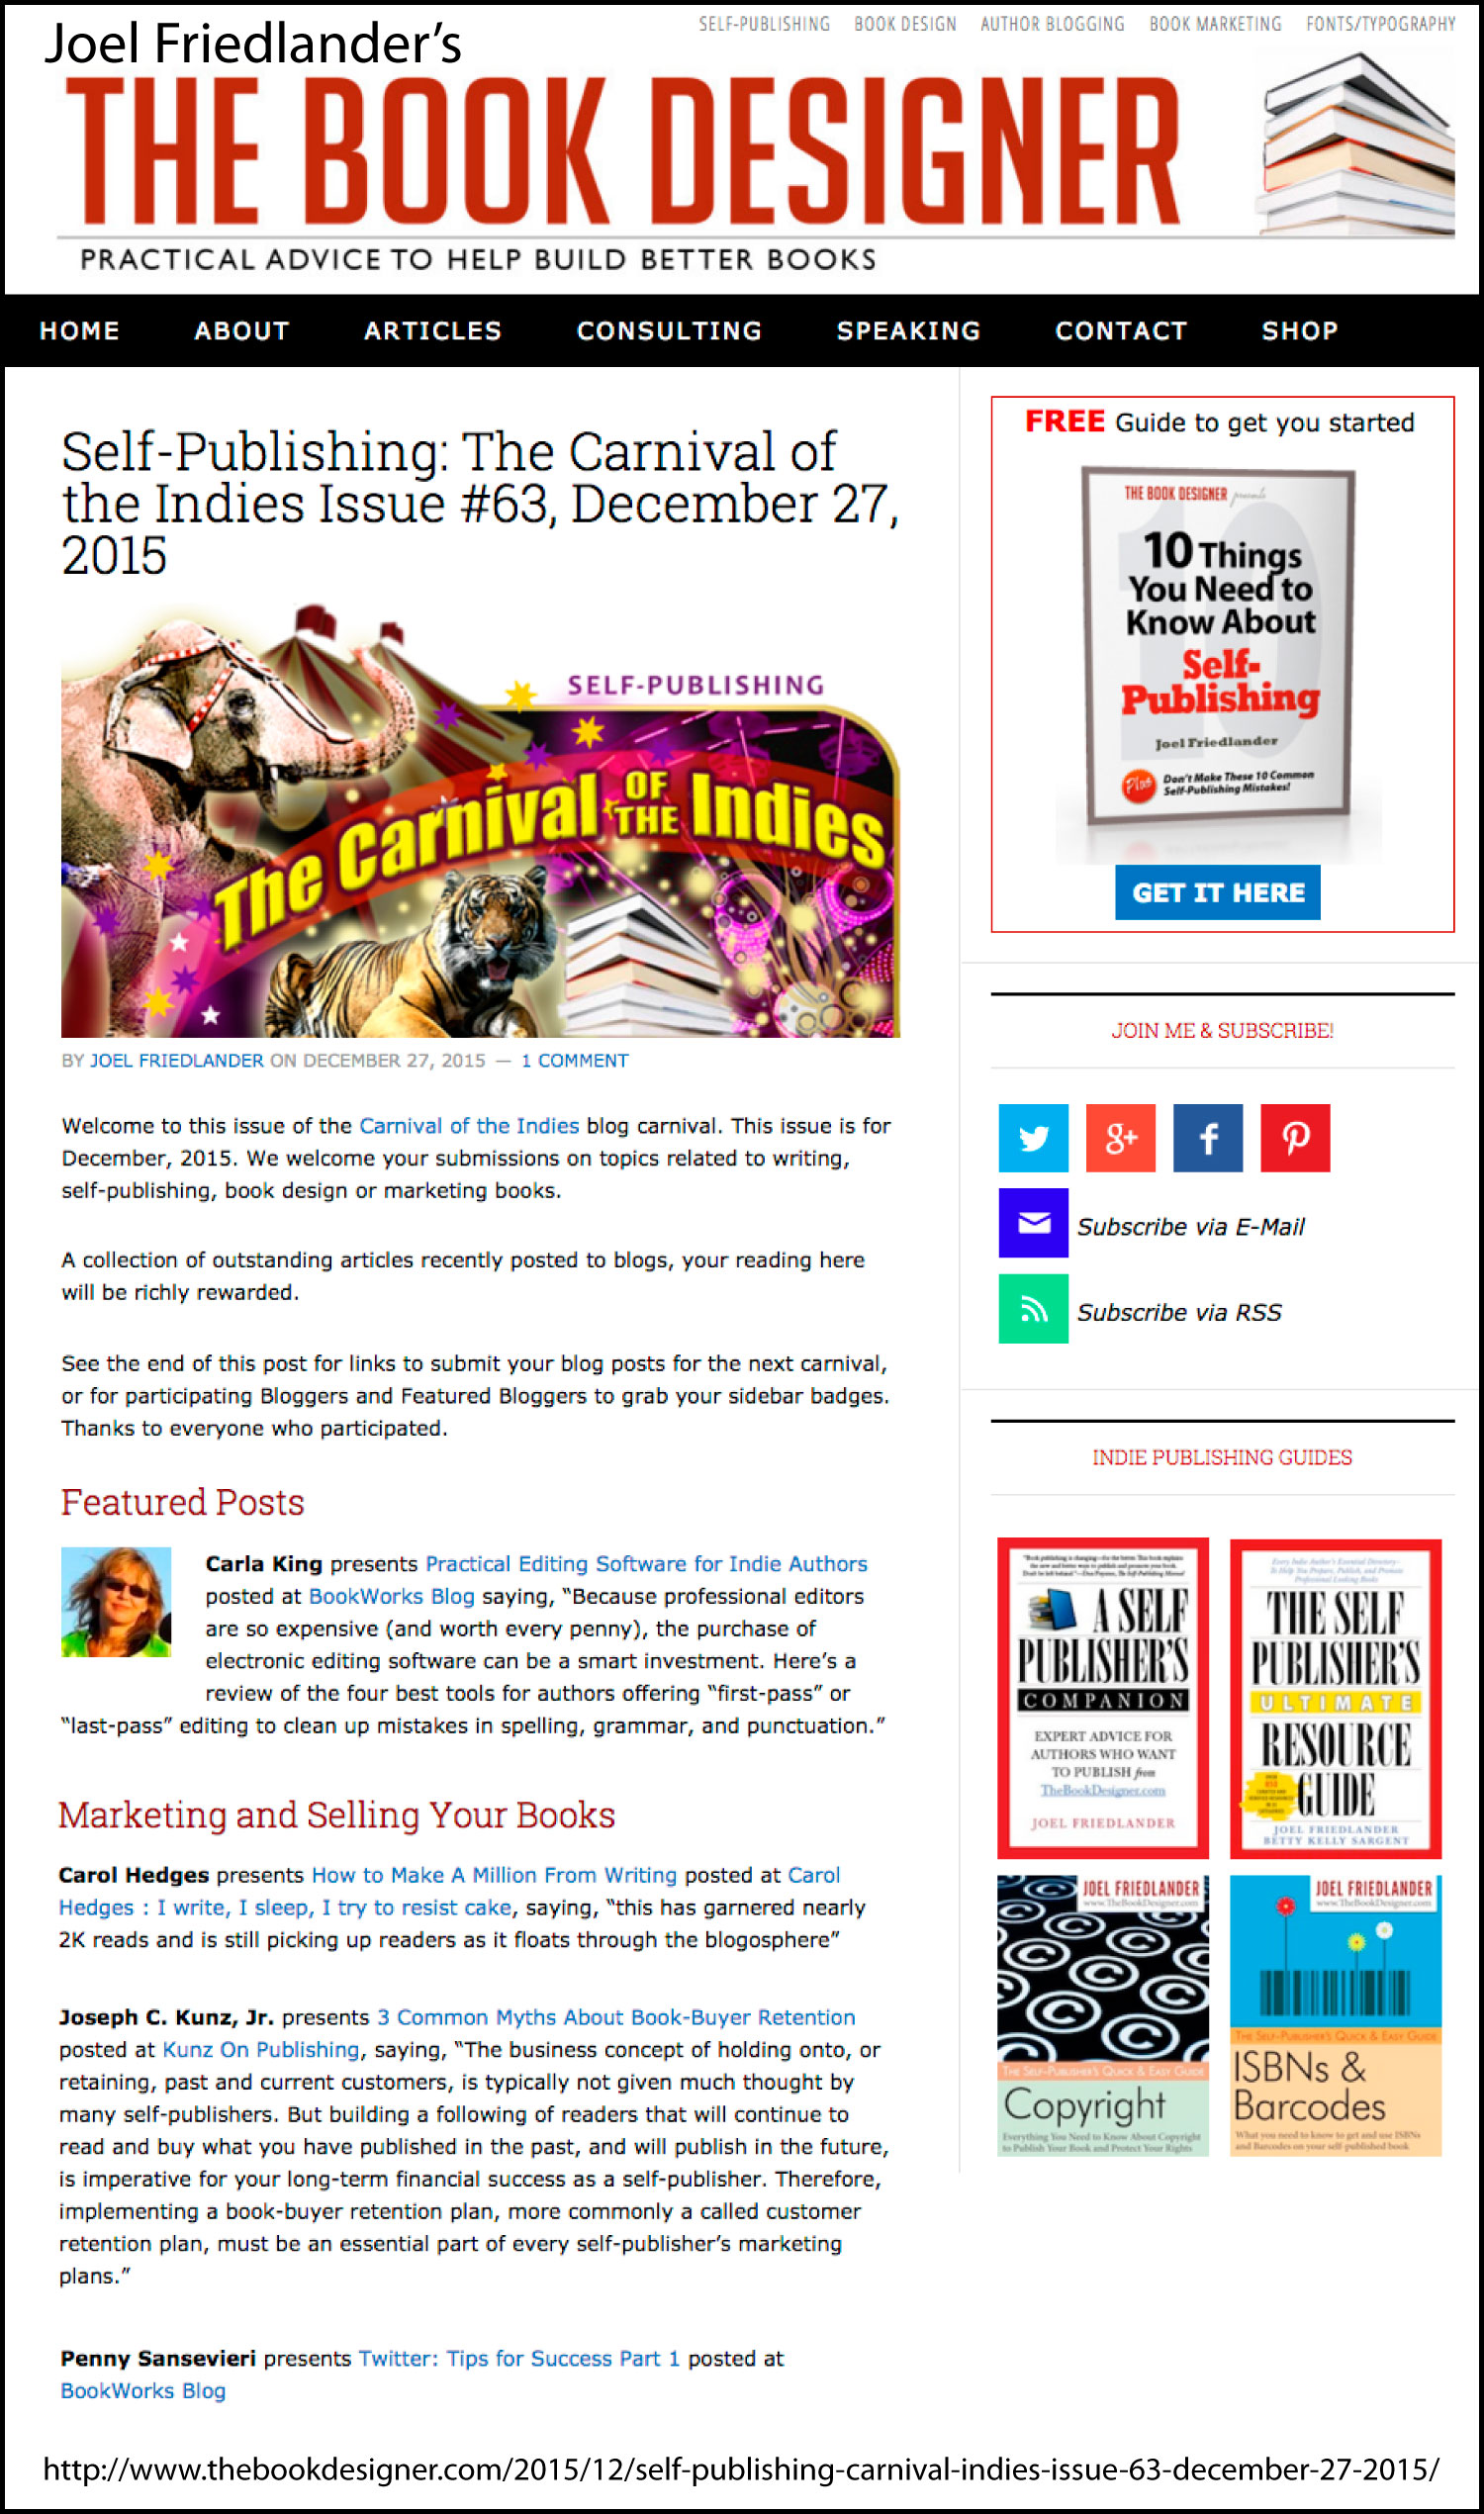 Thank you to Joel Friedlander for linking to this article from his website Carnival Of The Indies #63